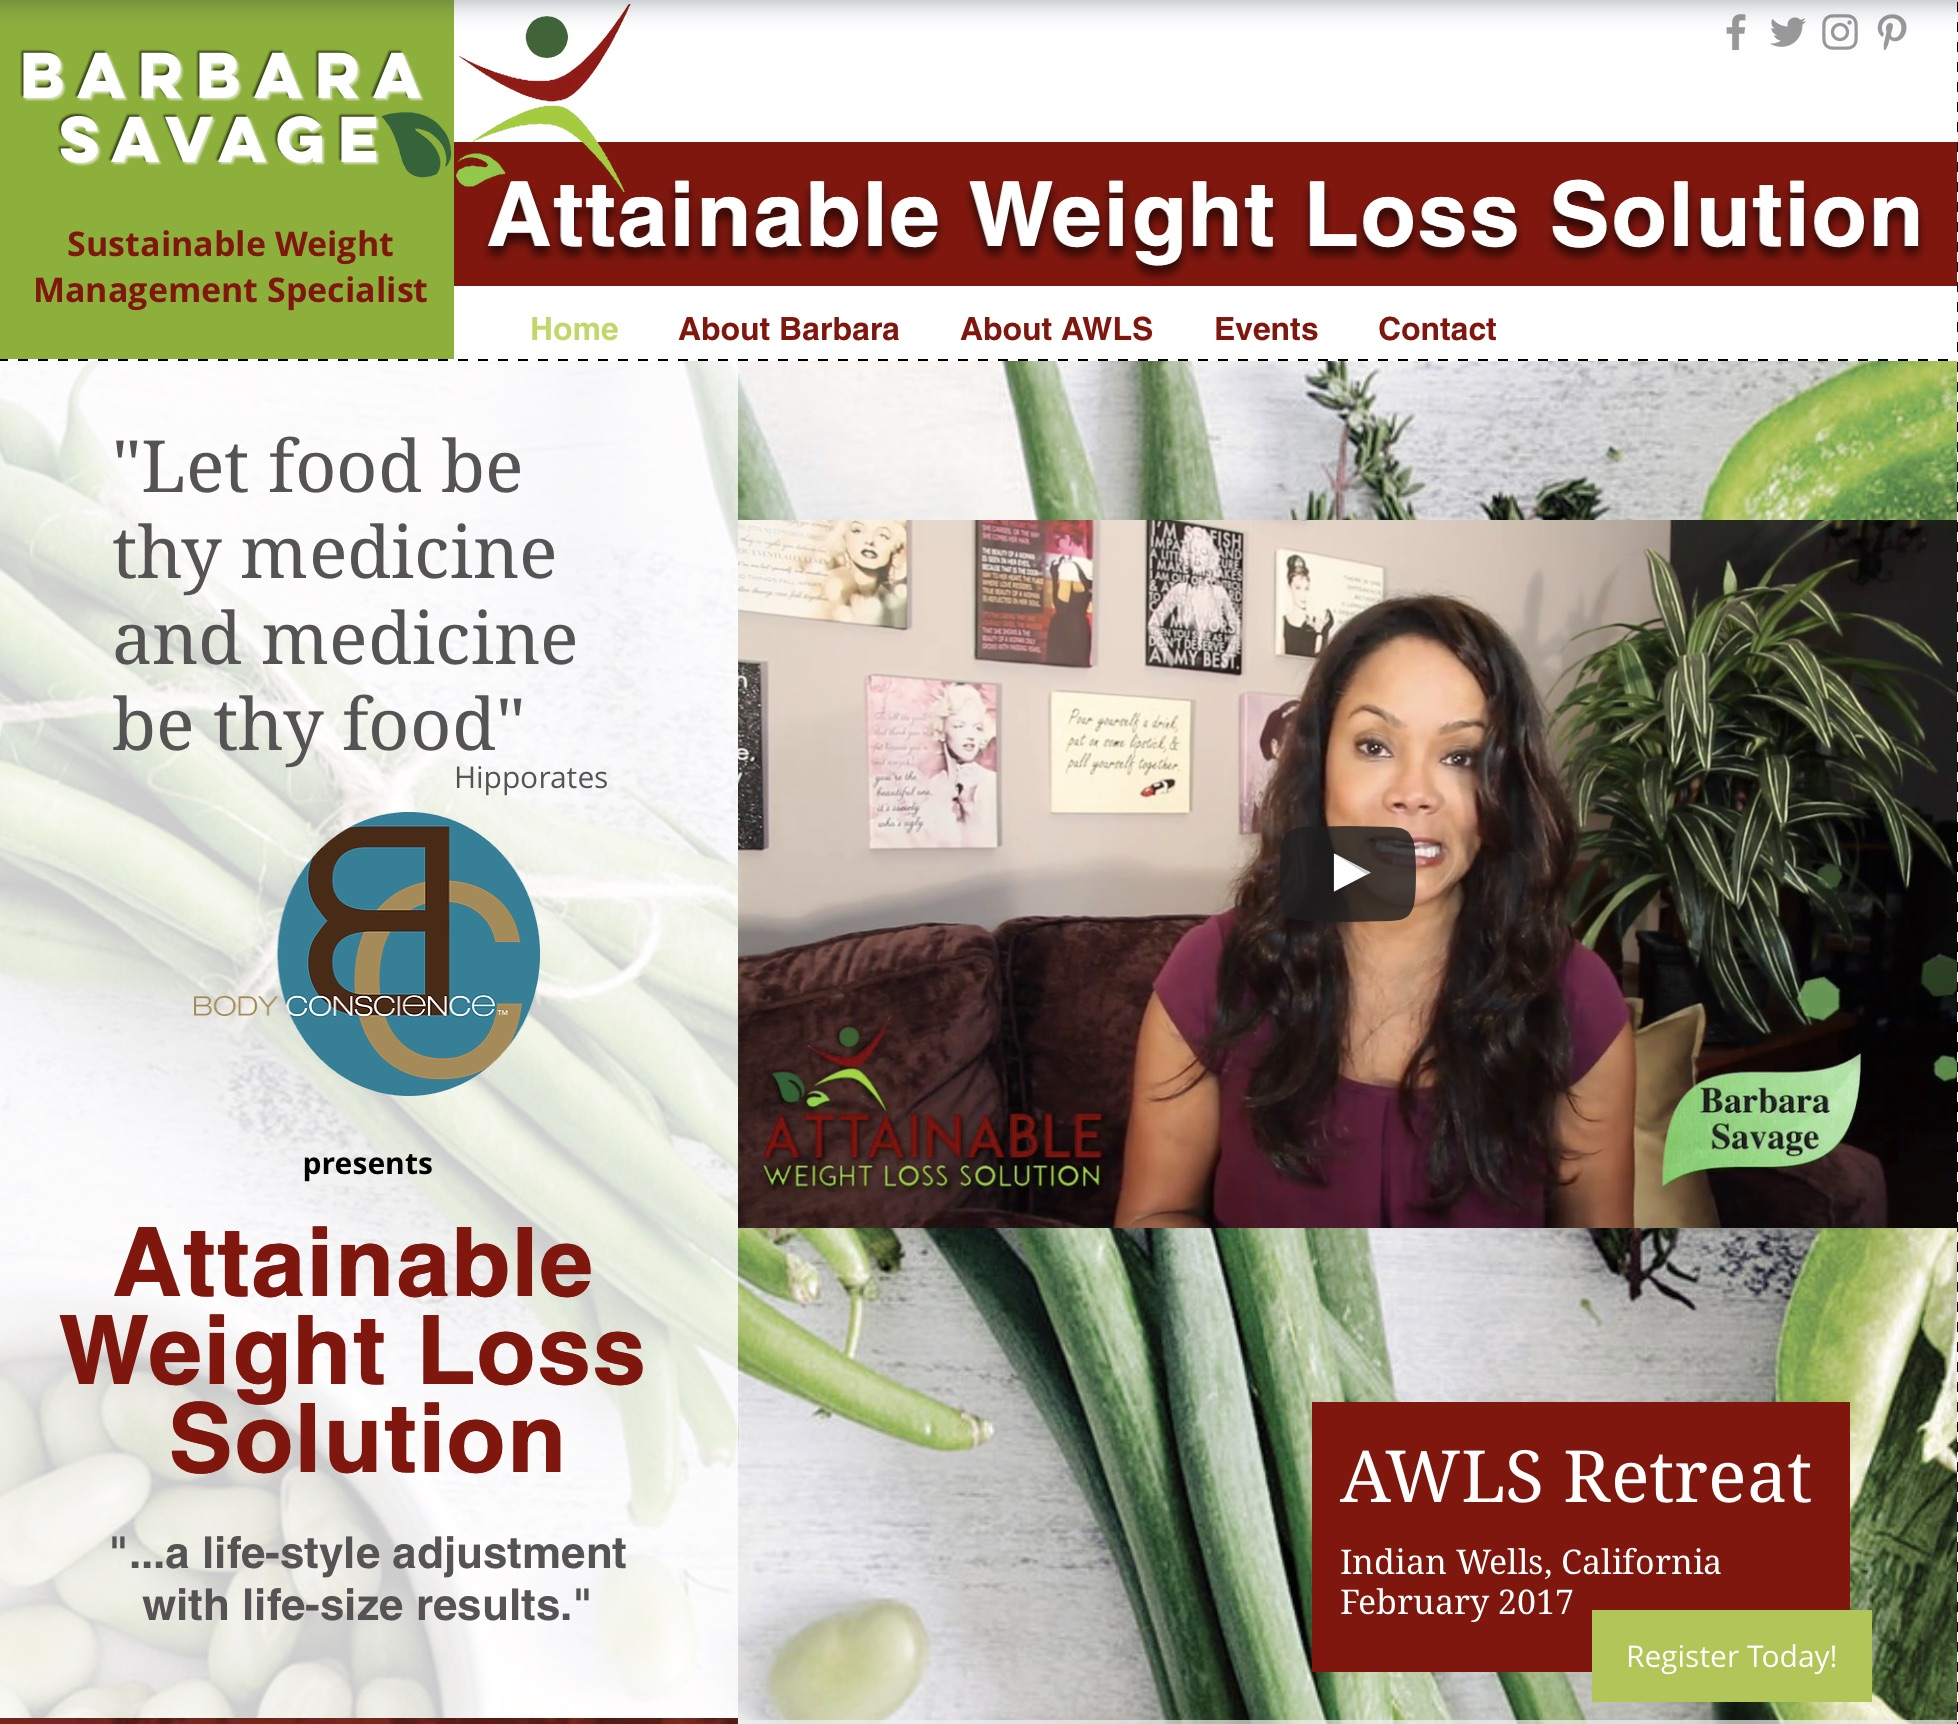 ATTAINABLE WEIGHT LOSS SOLUTION